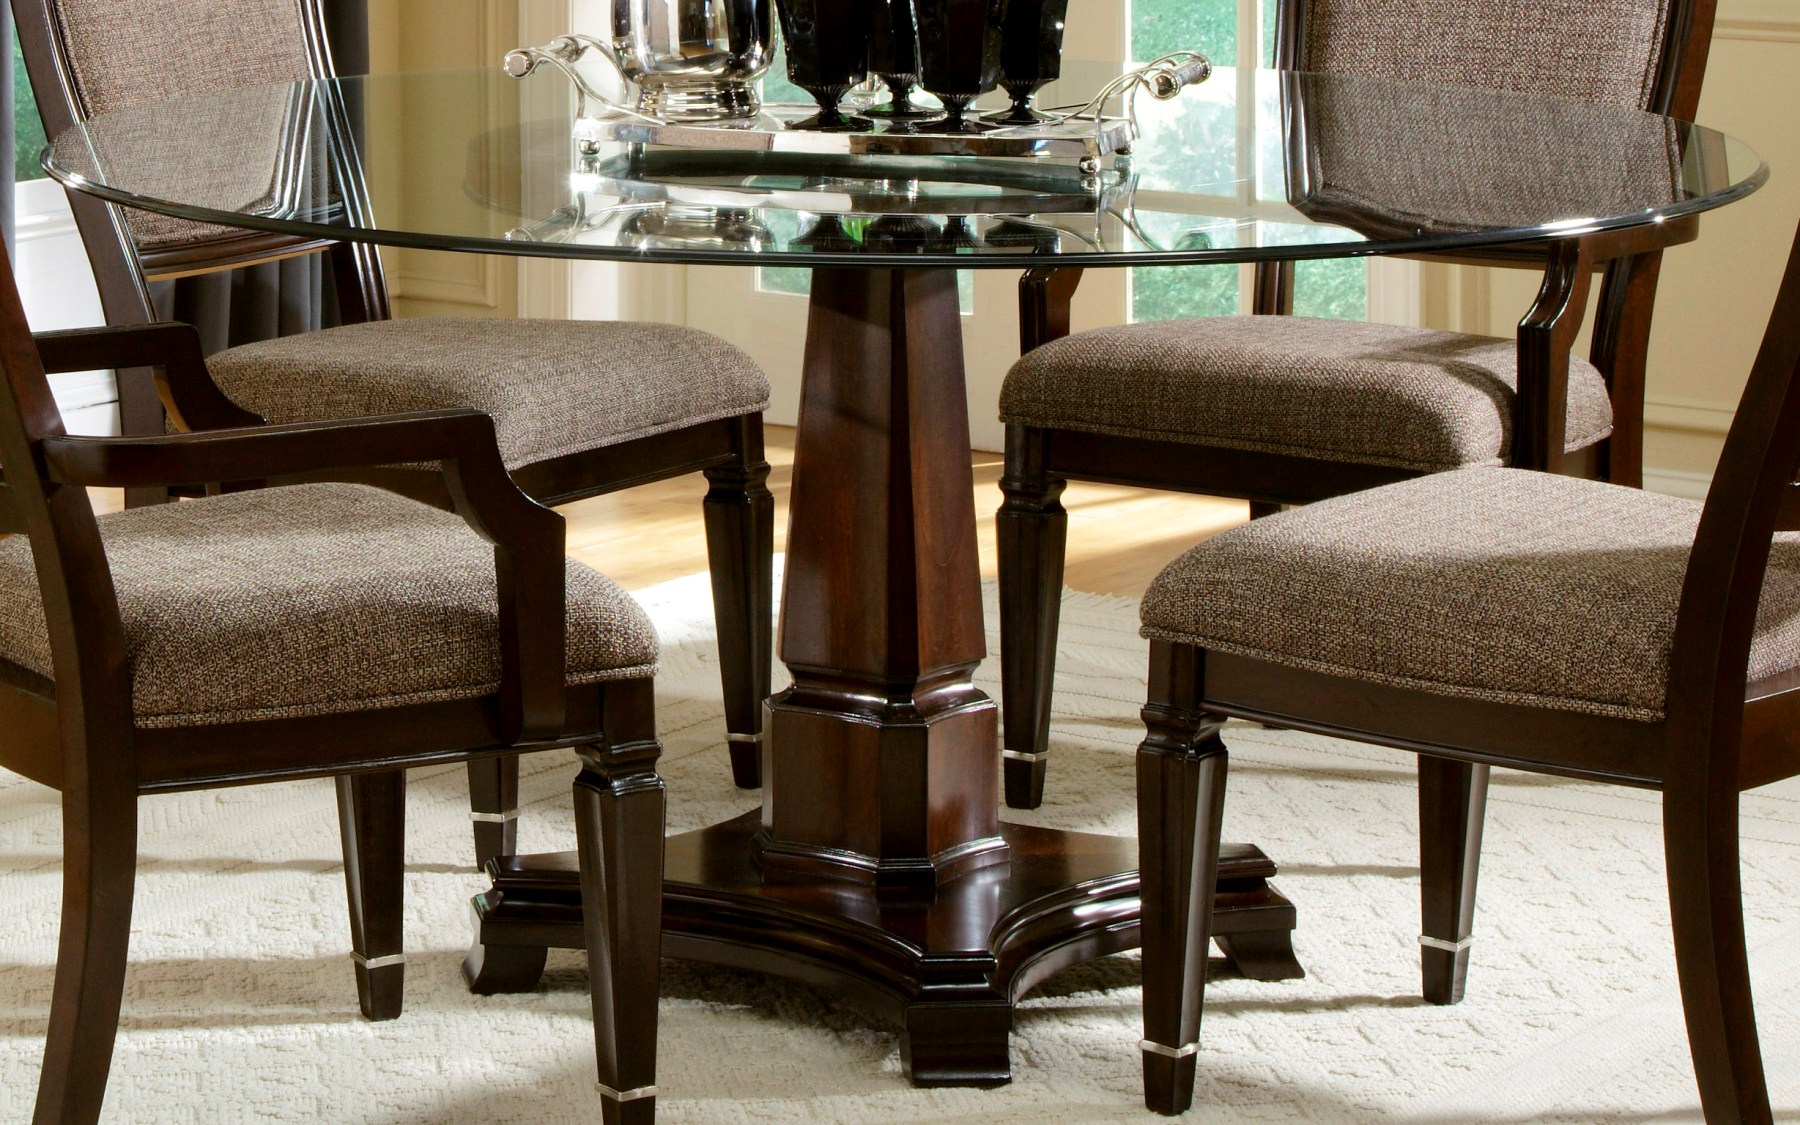 Dining Table Bases For Glass Tops Homesfeed